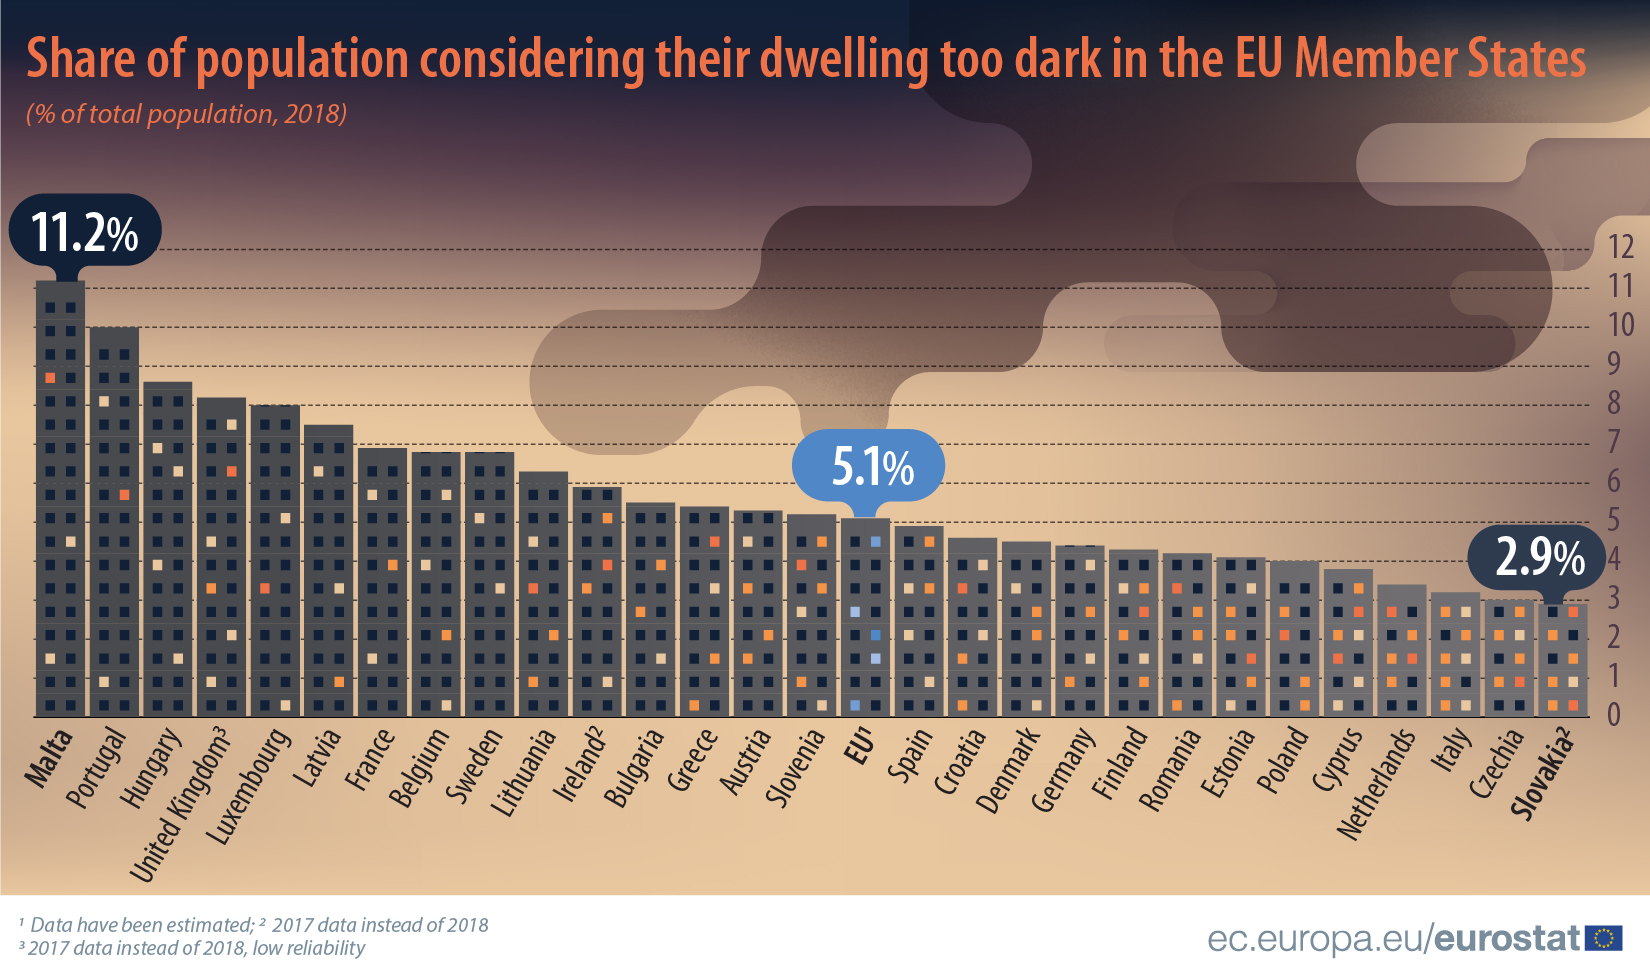 Share of population considering their dwelling too dark in the EU Member States, 2018